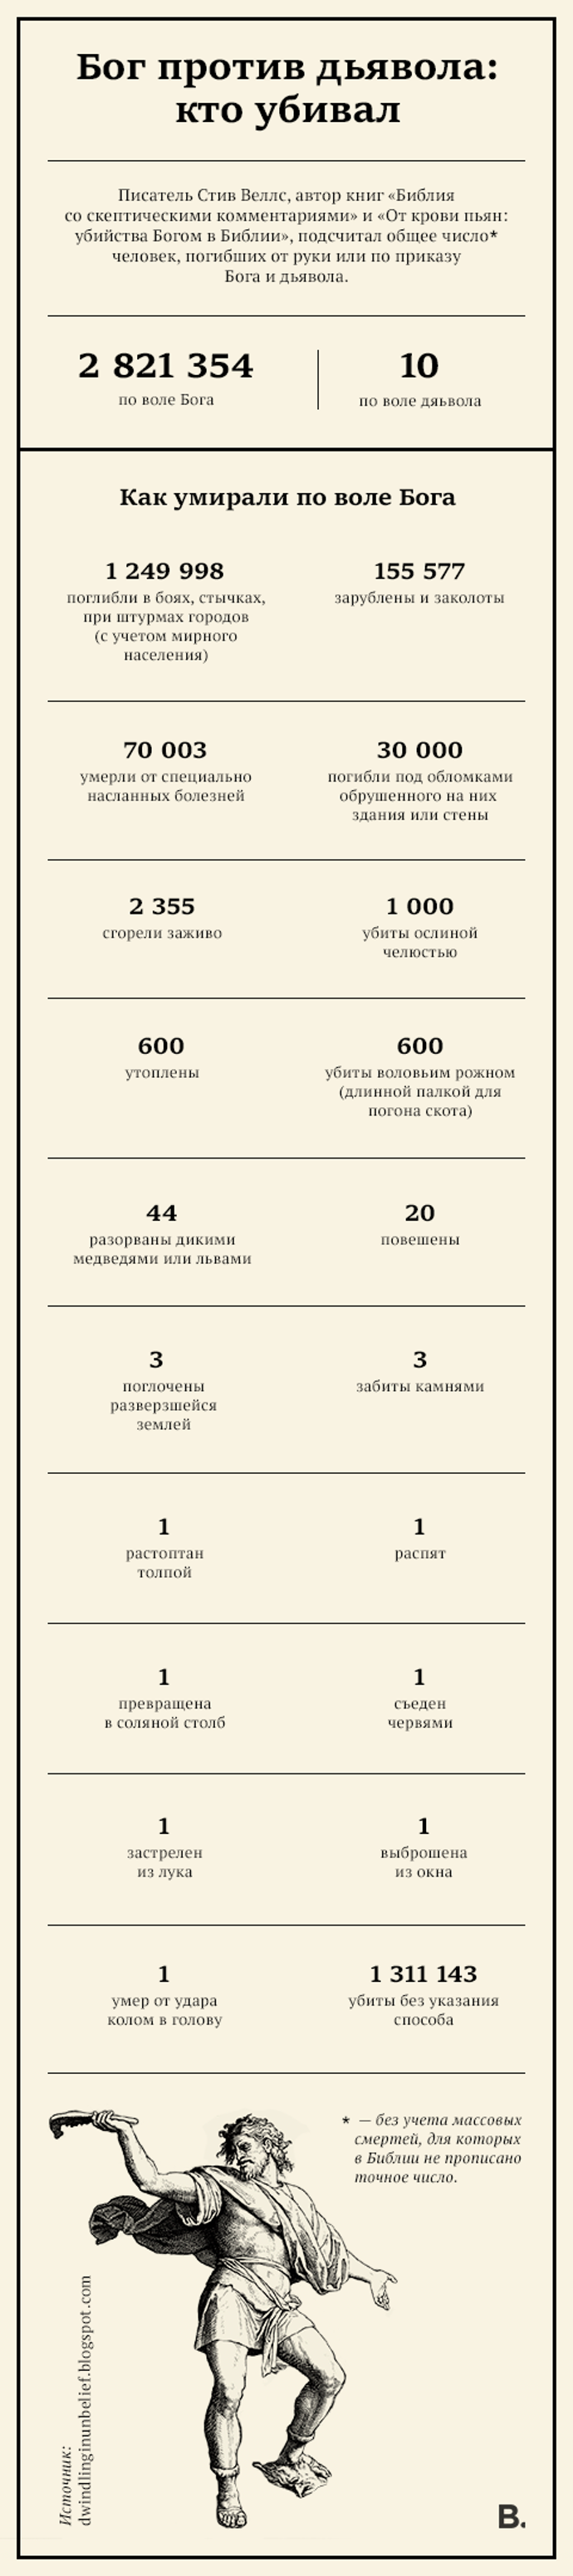 bible_infographic_mobile